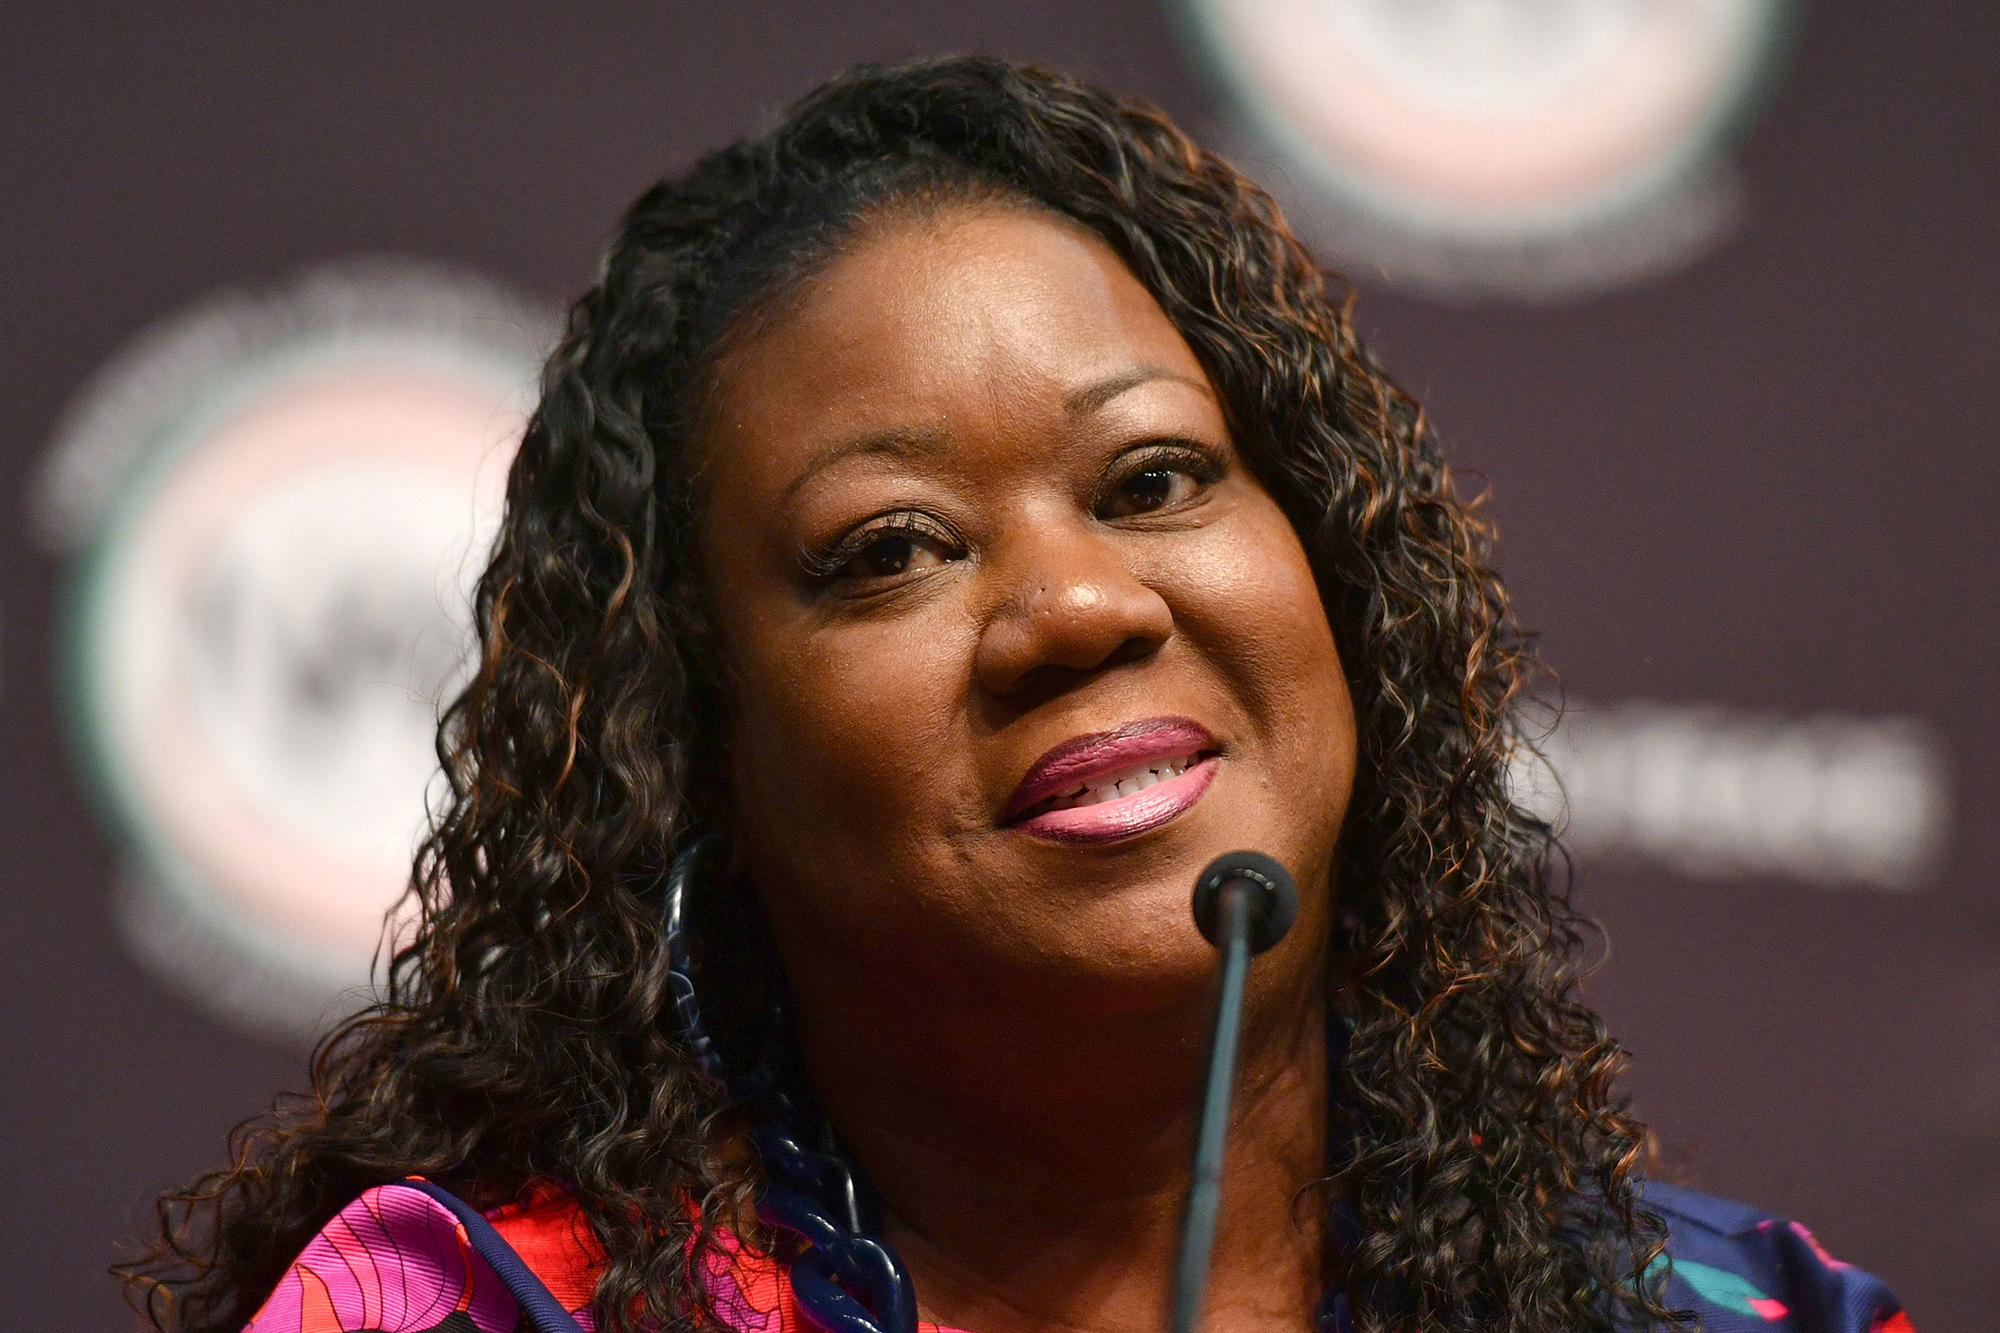 Trayvon Martin's Mother, Sybrina Fulton, Is Running for Political Office in Florida